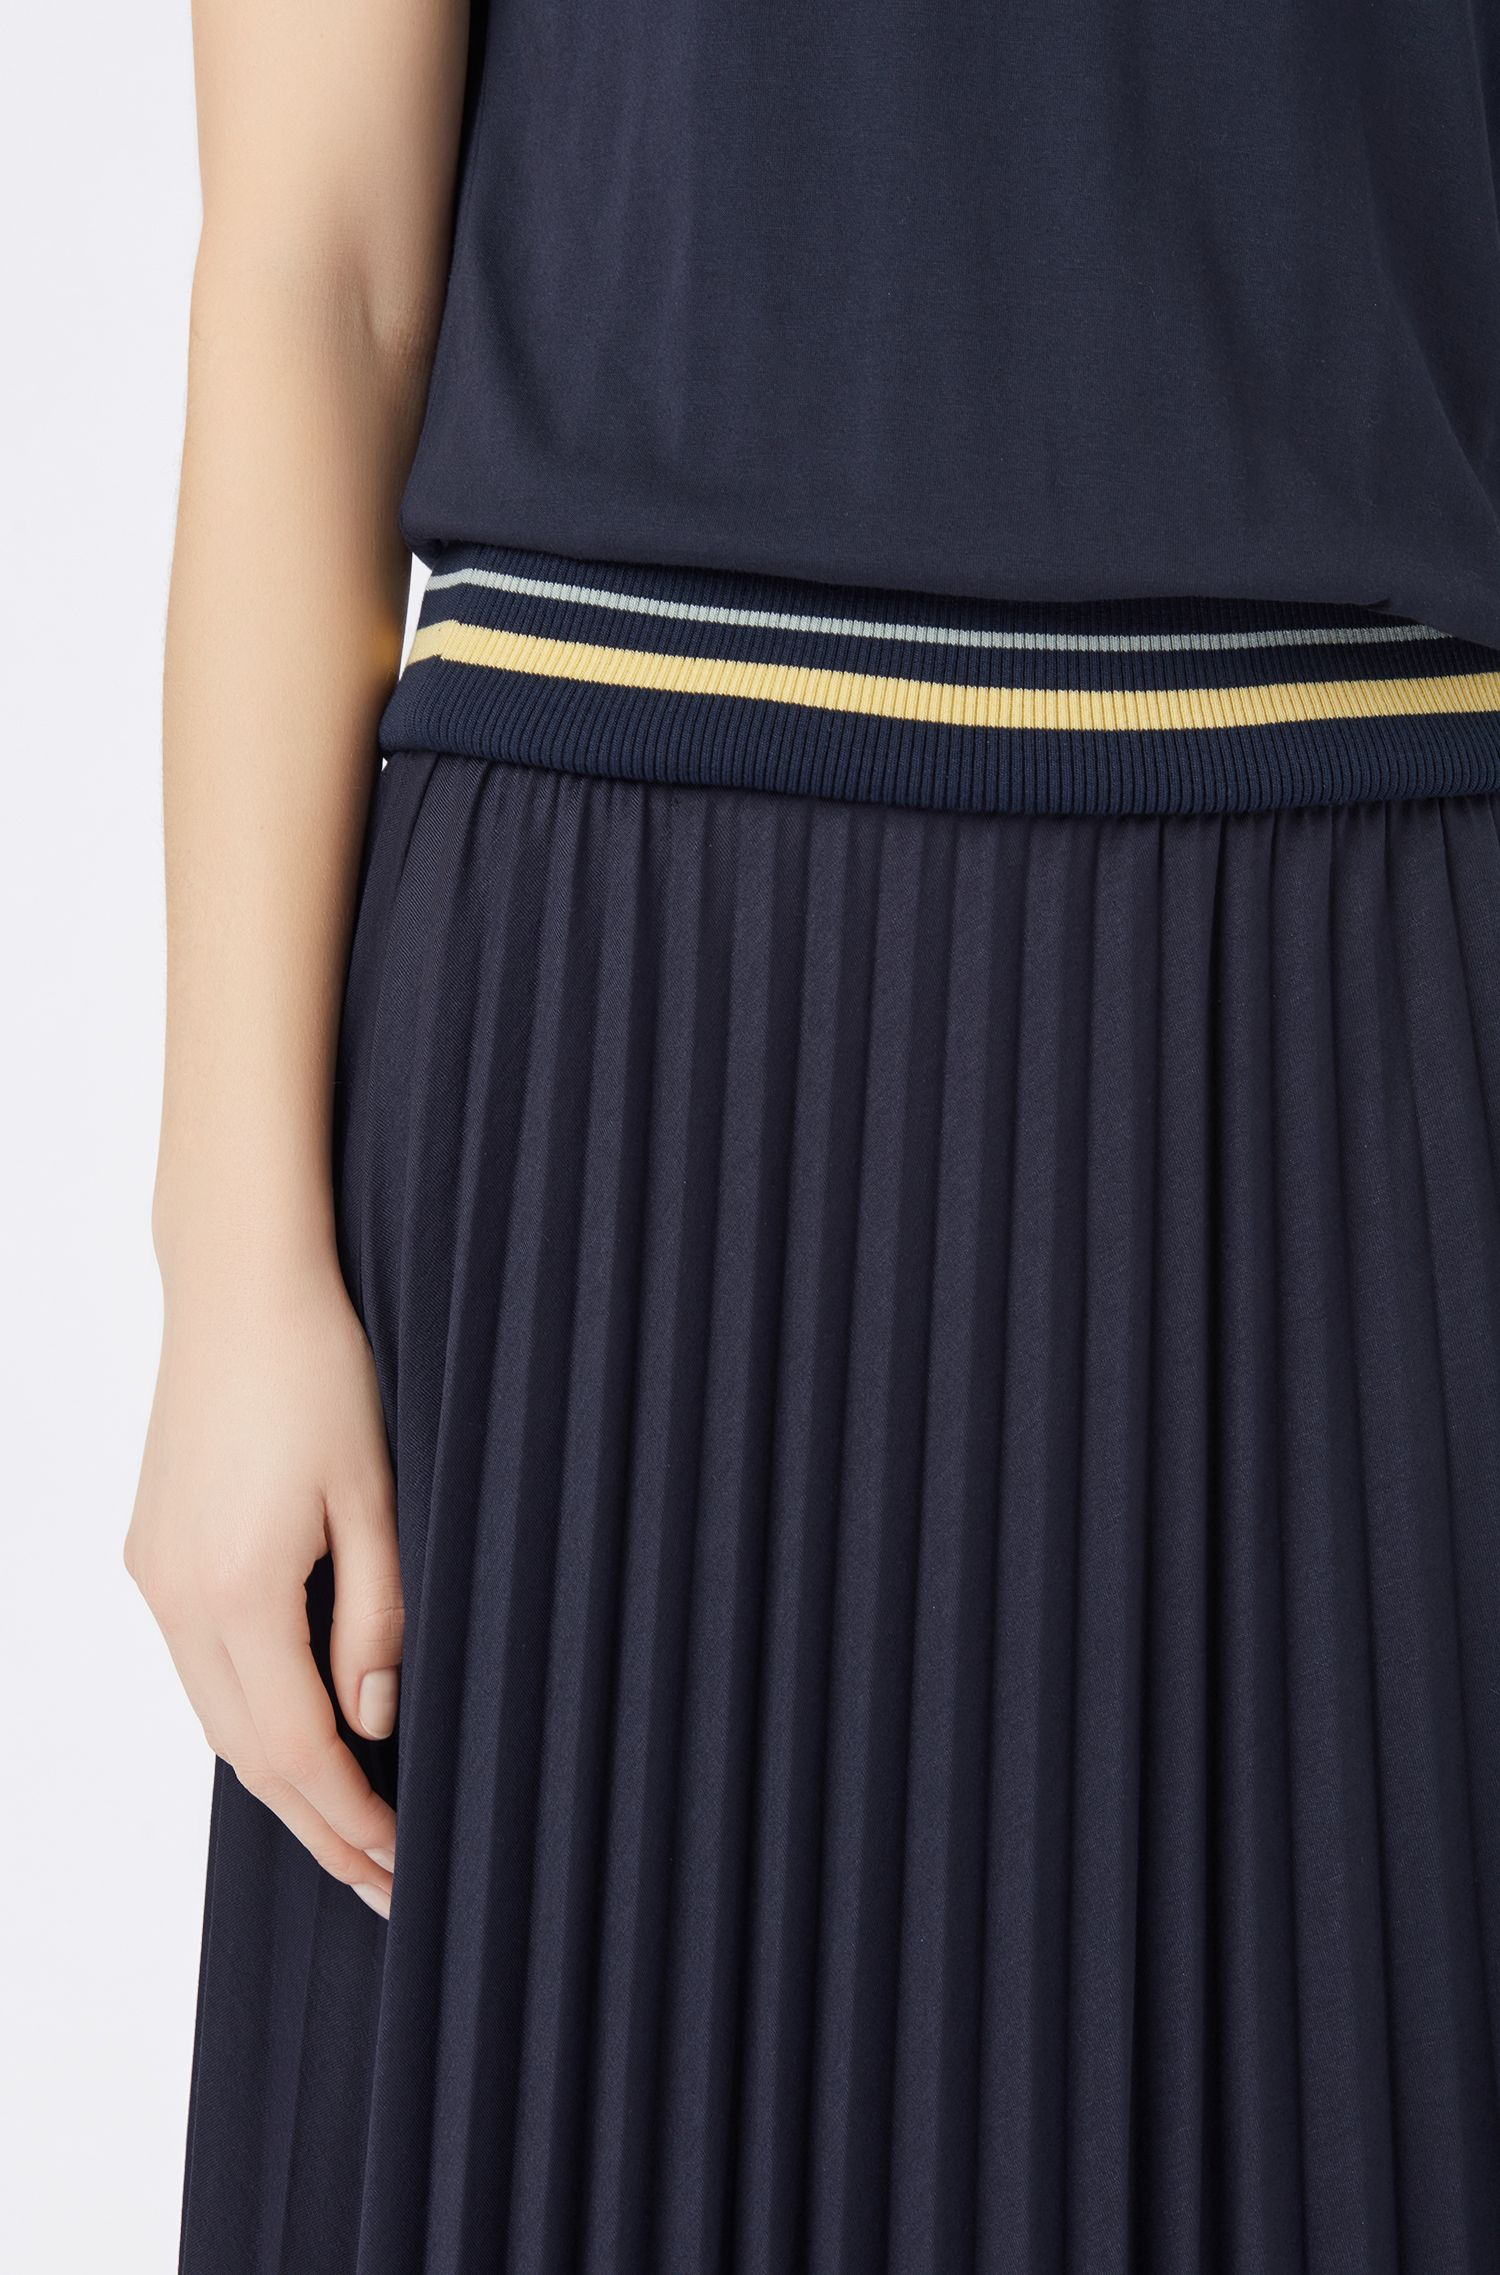 T-shirt dress with plissé skirt and ribbed waistband, Dark Blue